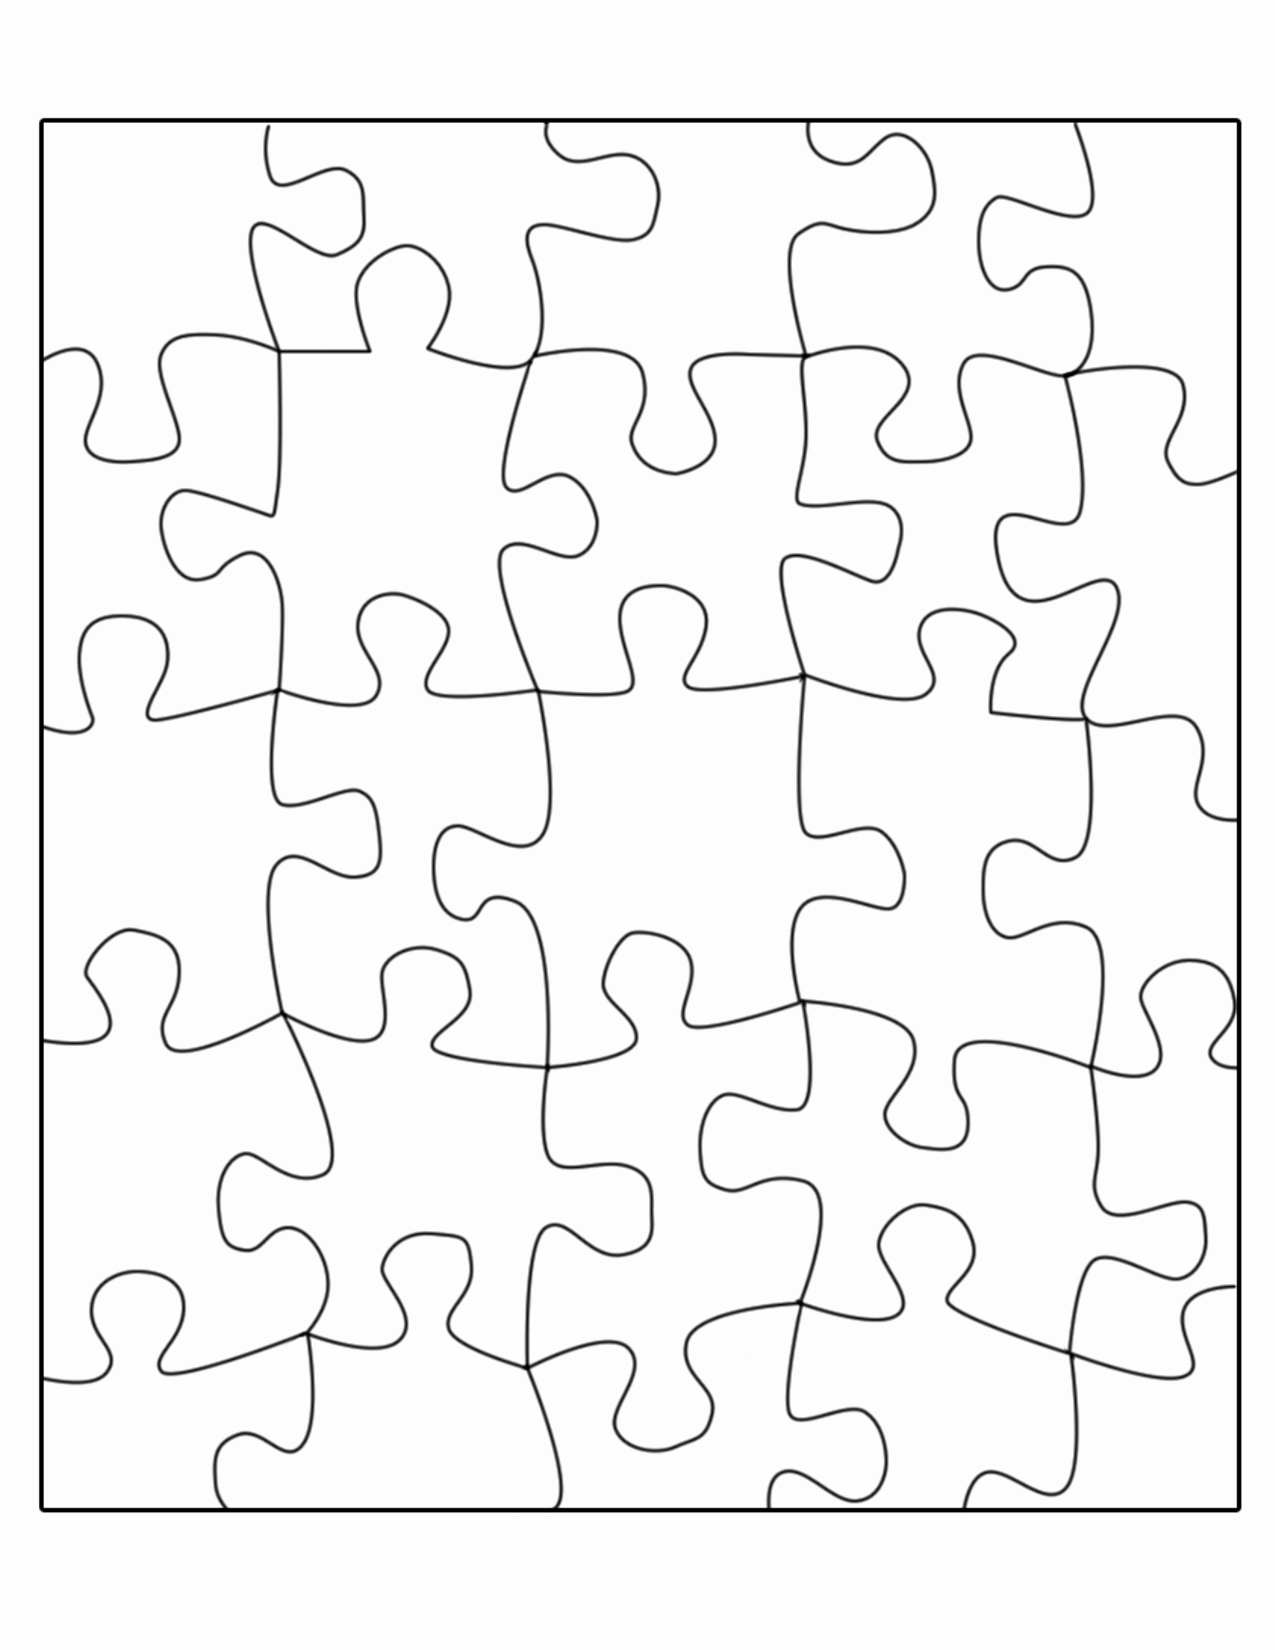 Jigsaw Puzzle Template Generator Fresh Free Puzzle Template Download Free Clip Art Free Clip